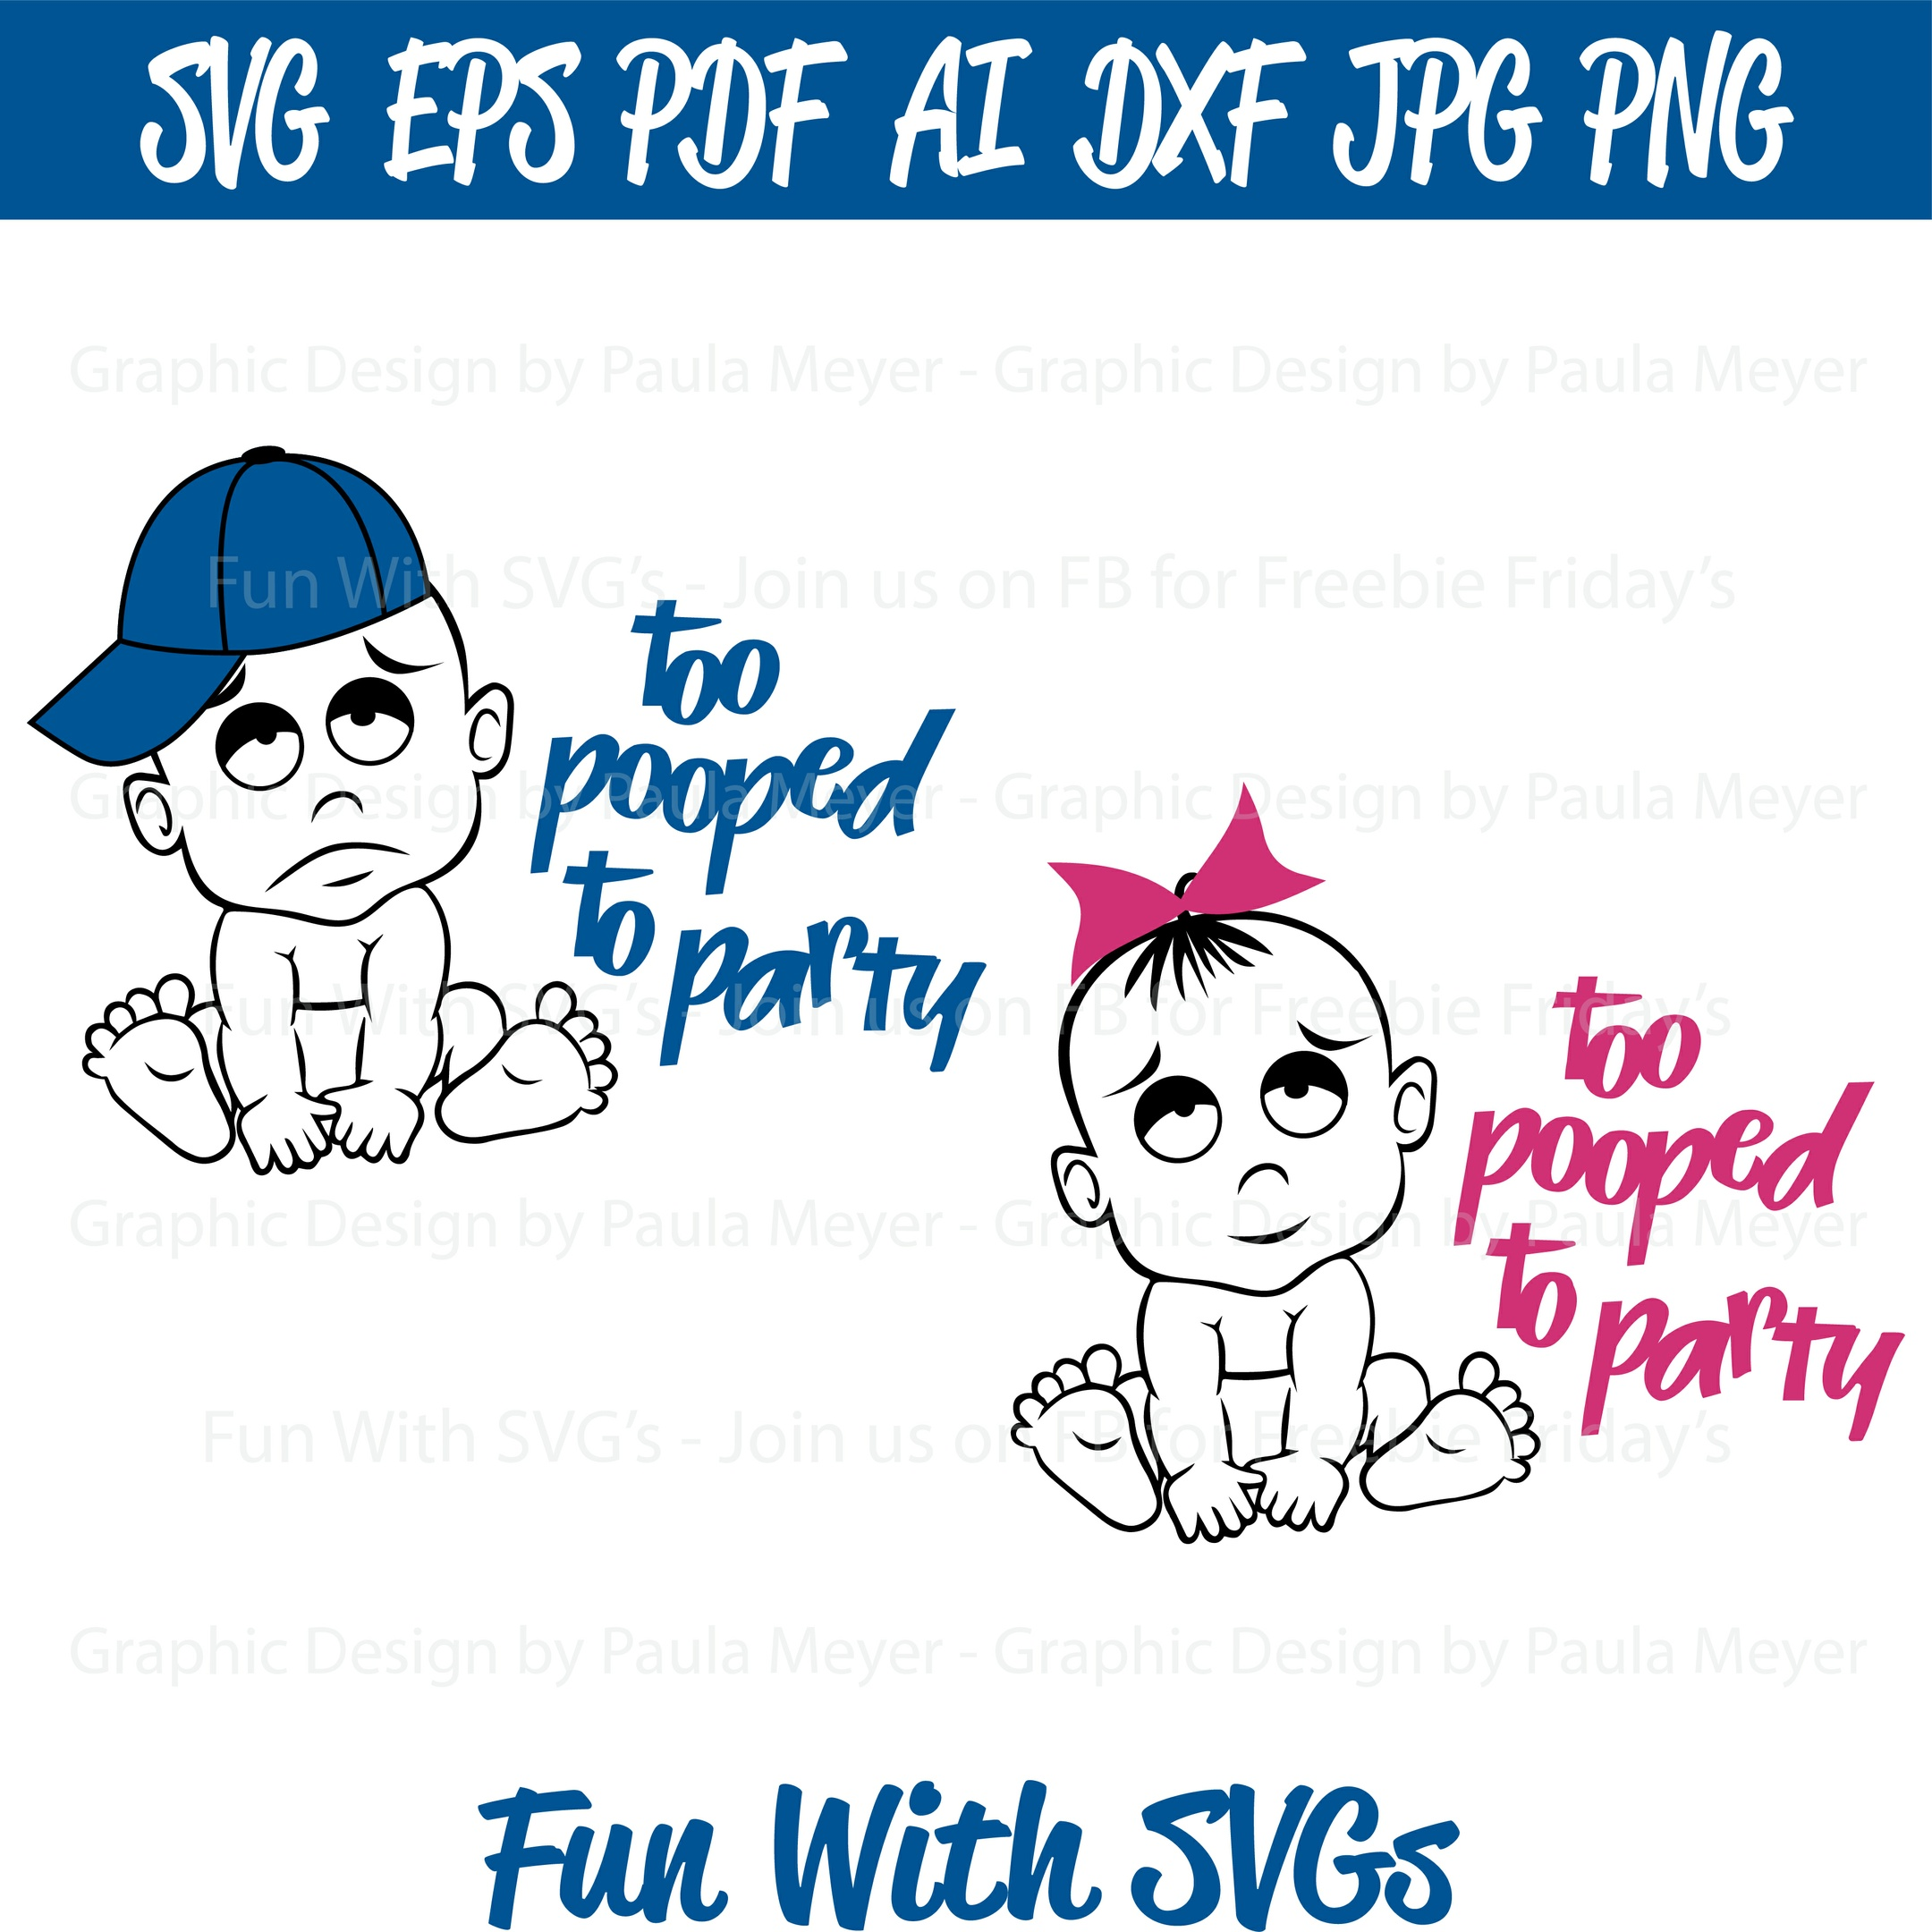 Too Pooped to Party - Twin Babies - SVG, High Res. Printable Graphics and Editable Vector Art